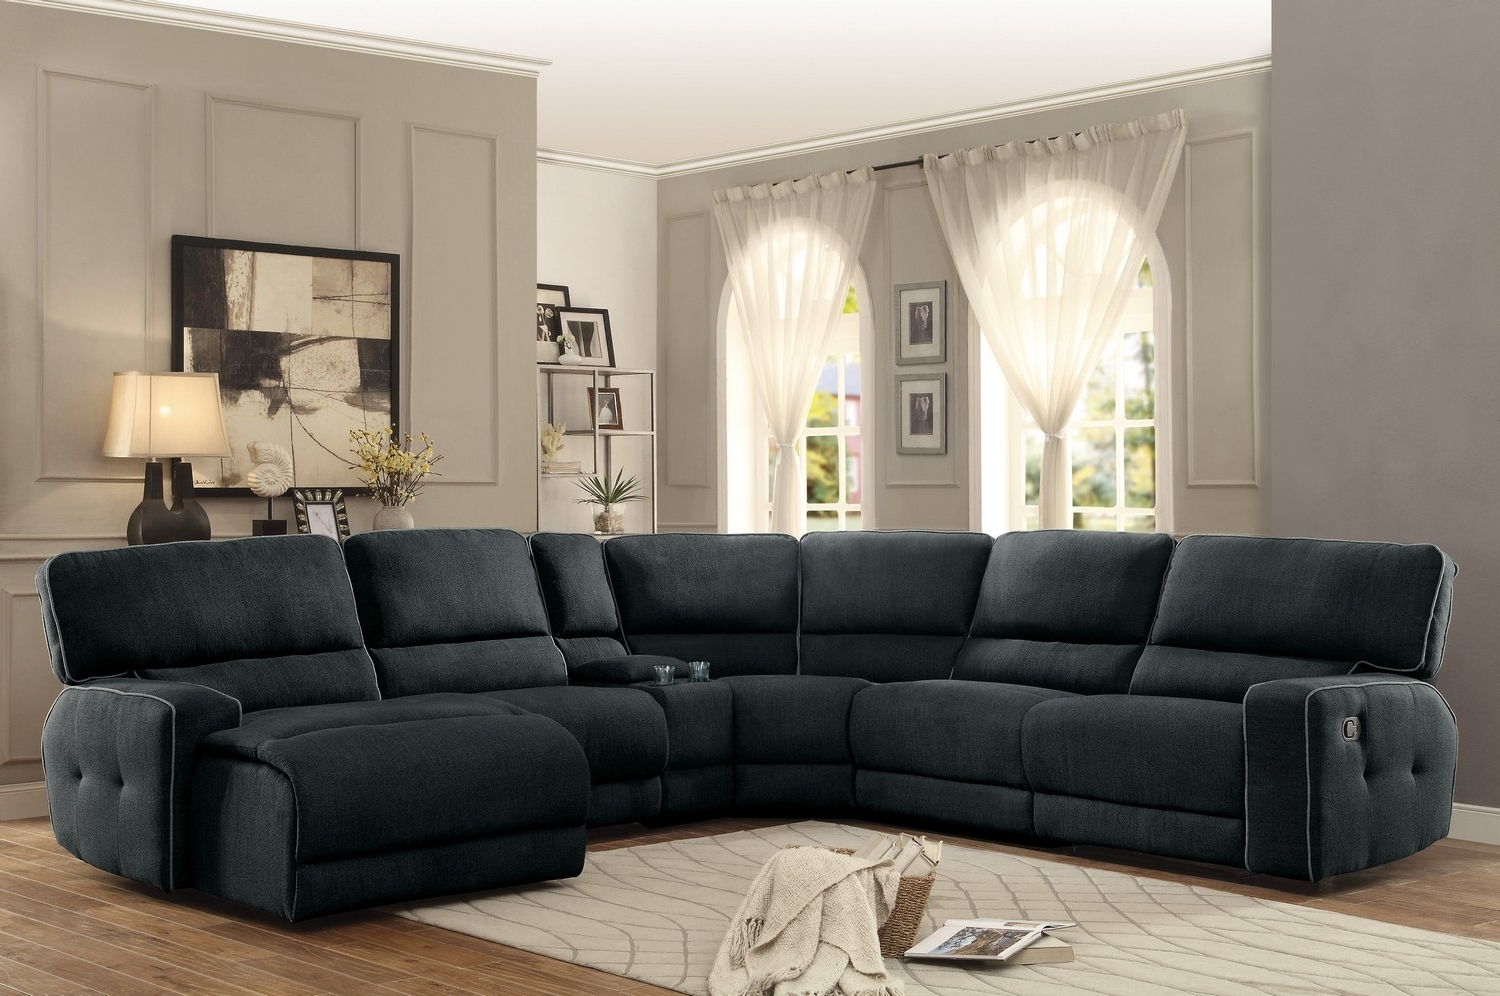 Dallas Sectional Sofas Within Most Current Homelegance Keamey Reclining Sectional Sofa Set A – Polyester (View 8 of 15)